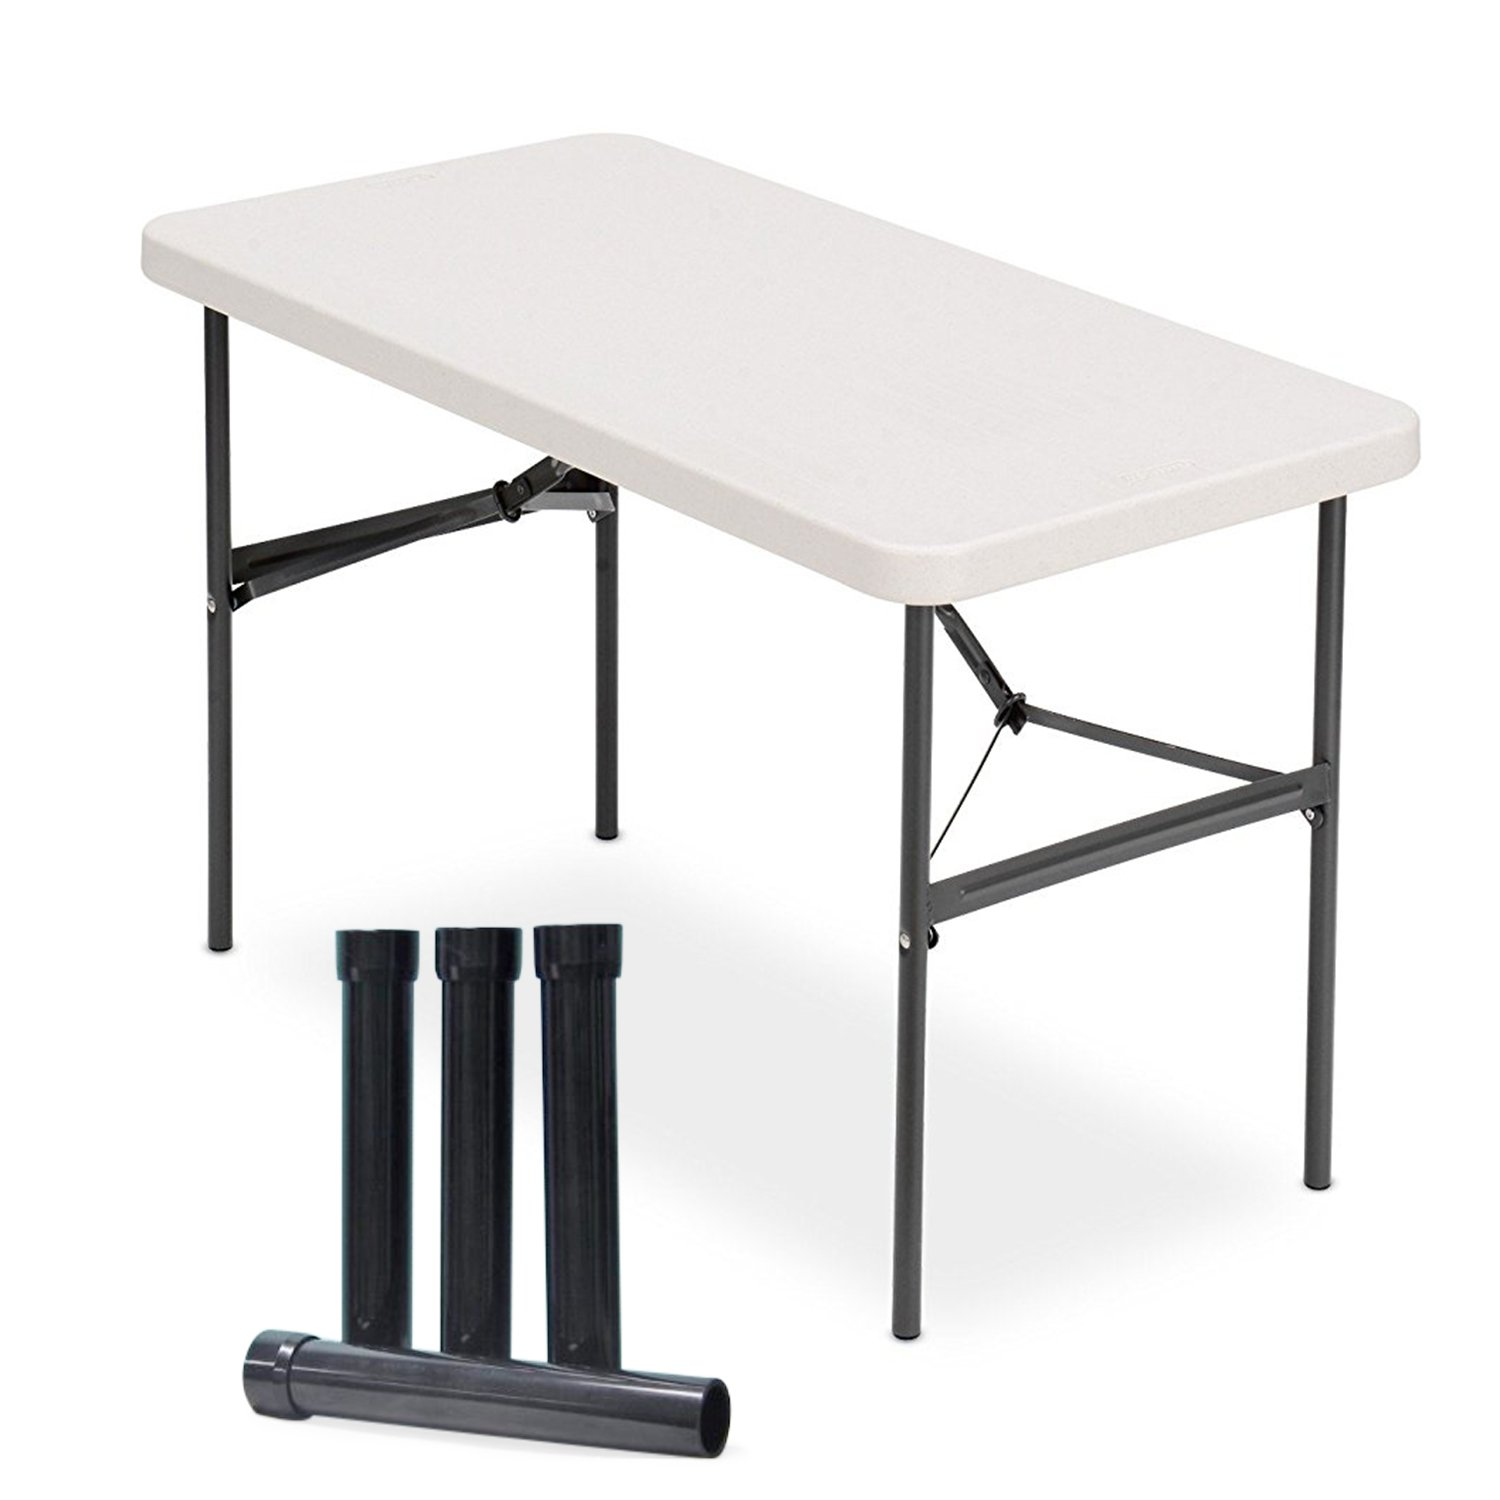 Lift Your Table®™ folding table risers extenders STRAIGHT LEG KIT. Save Your Back!